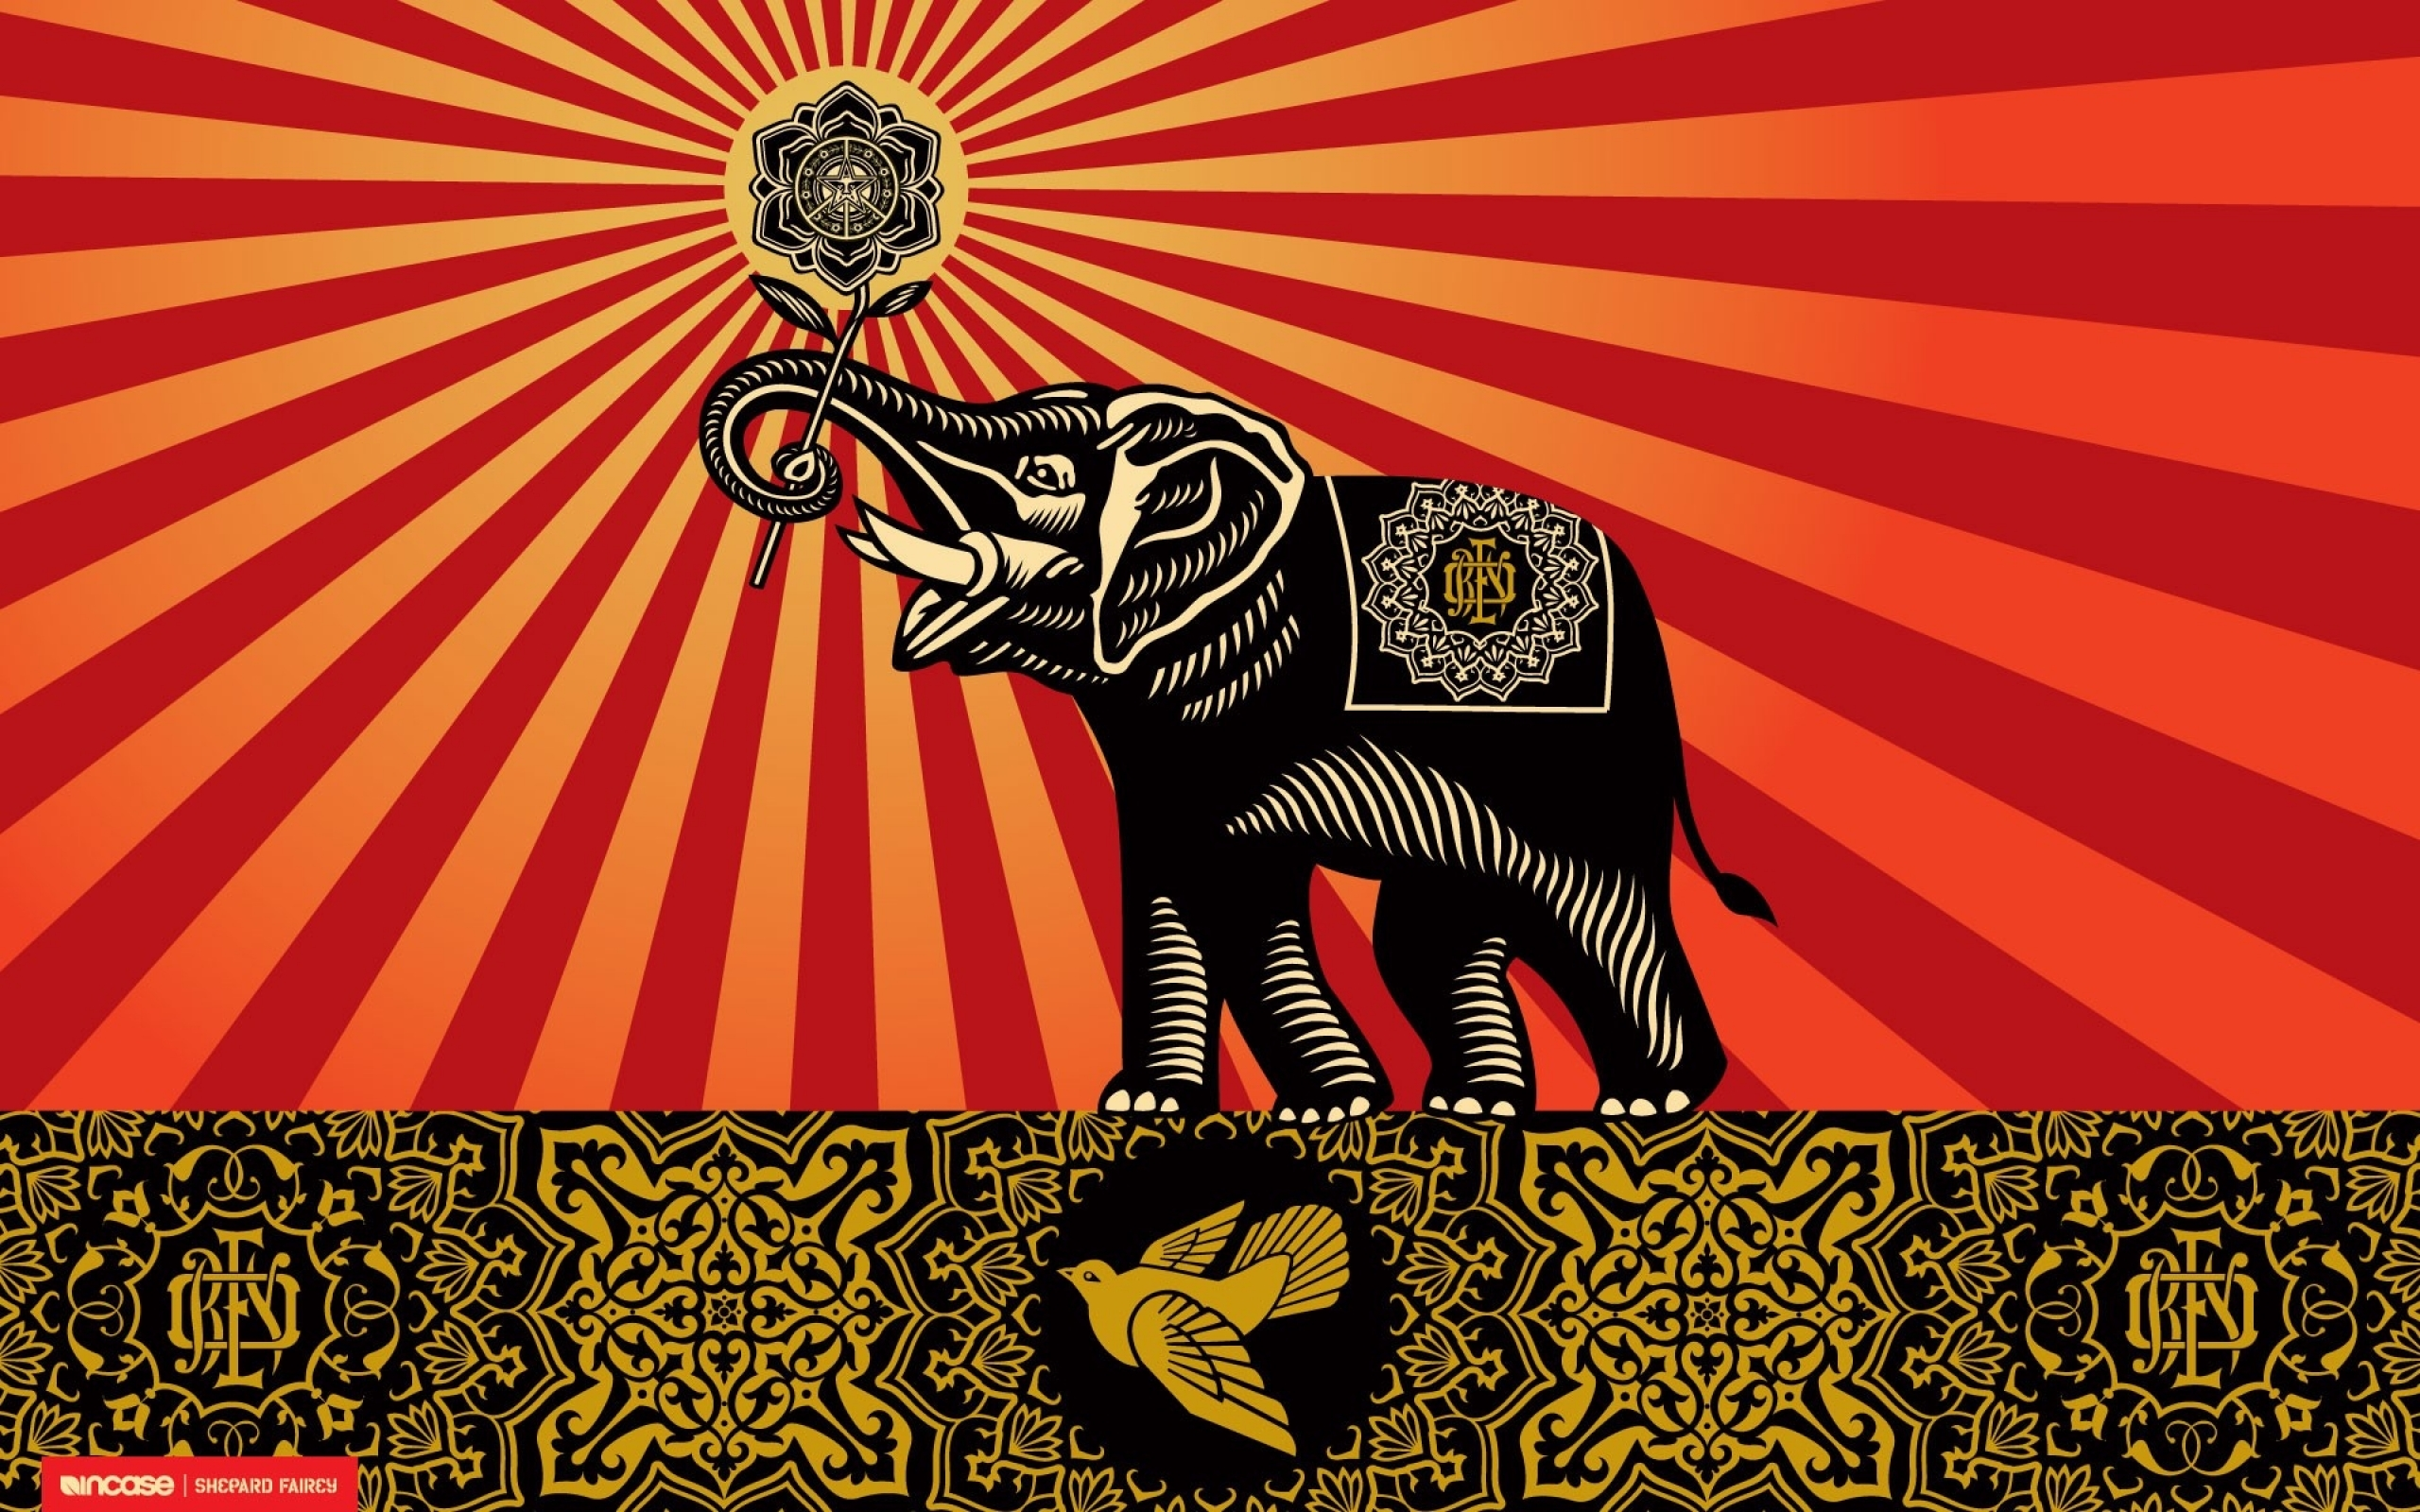 2560x1600 obey elephants shepard fairey incase 1920x1200 wallpaper Art 2560x1600